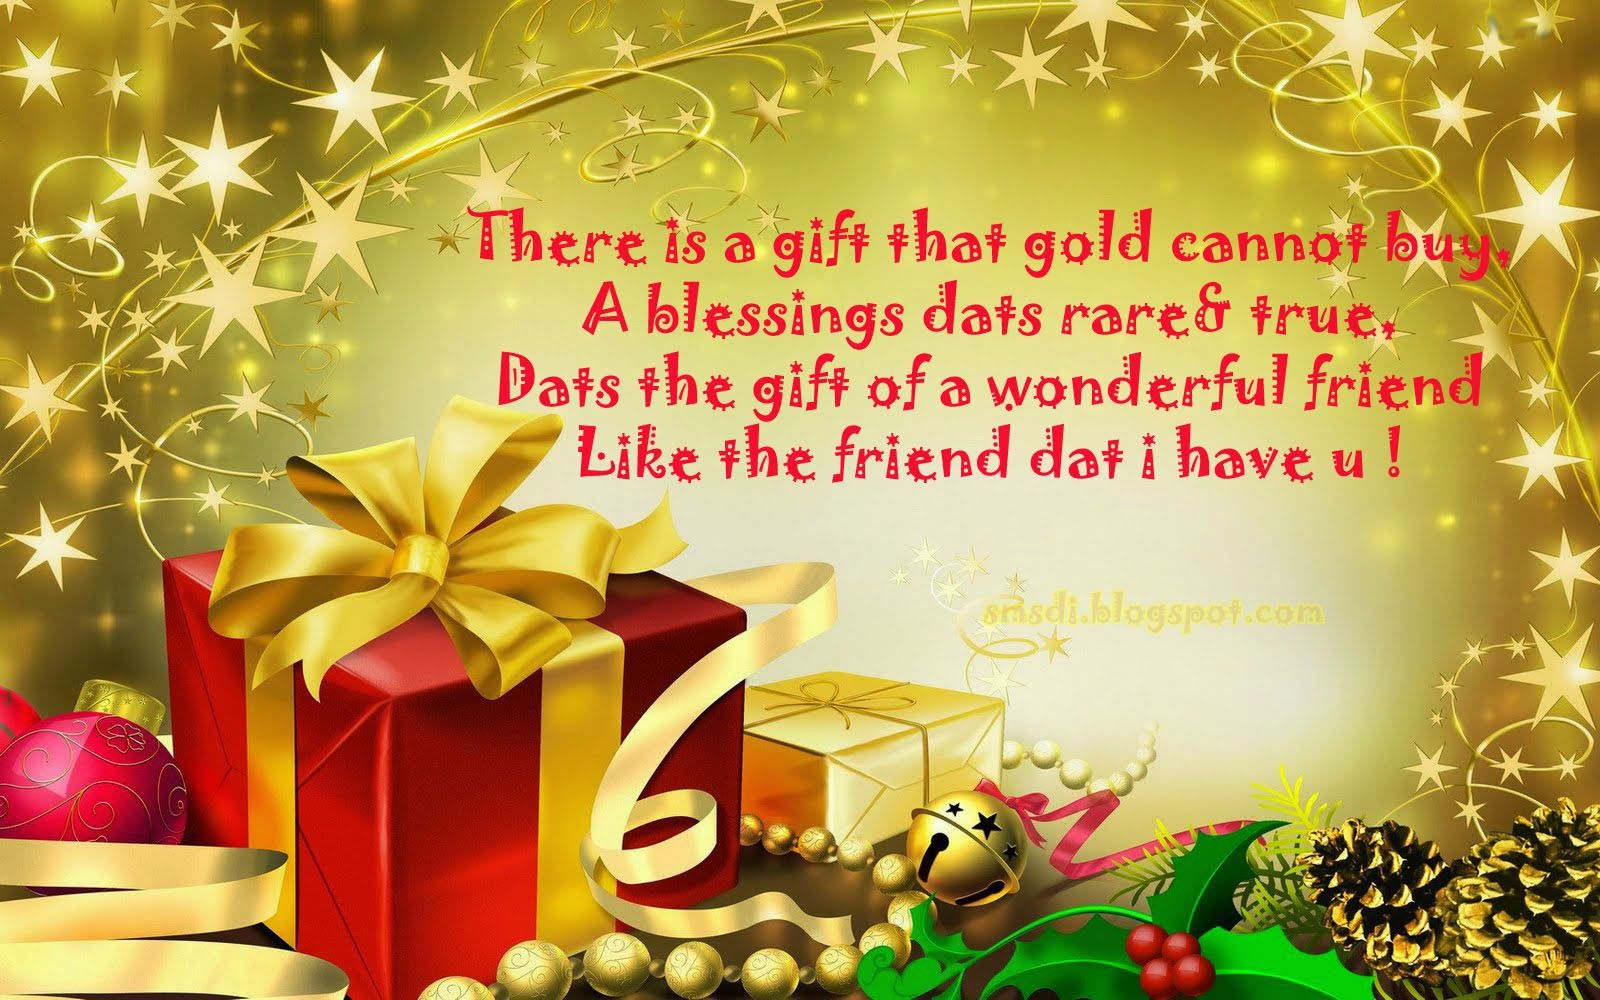 SMS: Best gifts of friends | Sms Dialogue | Pinterest | Christmas ...